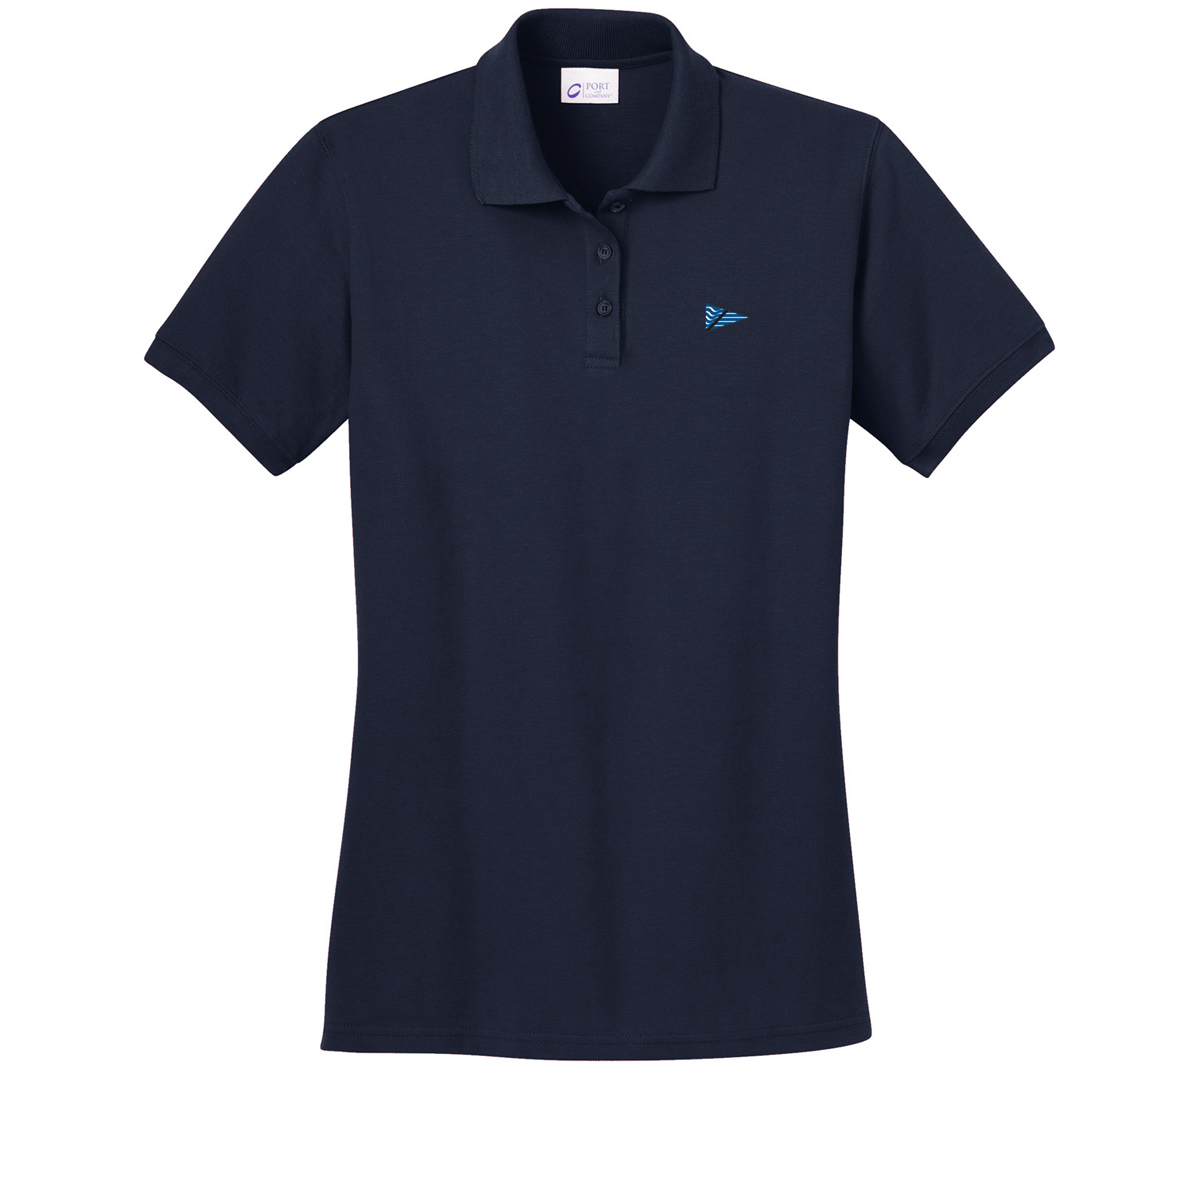 Breakwater Yacht Club-W's Cotton Polo